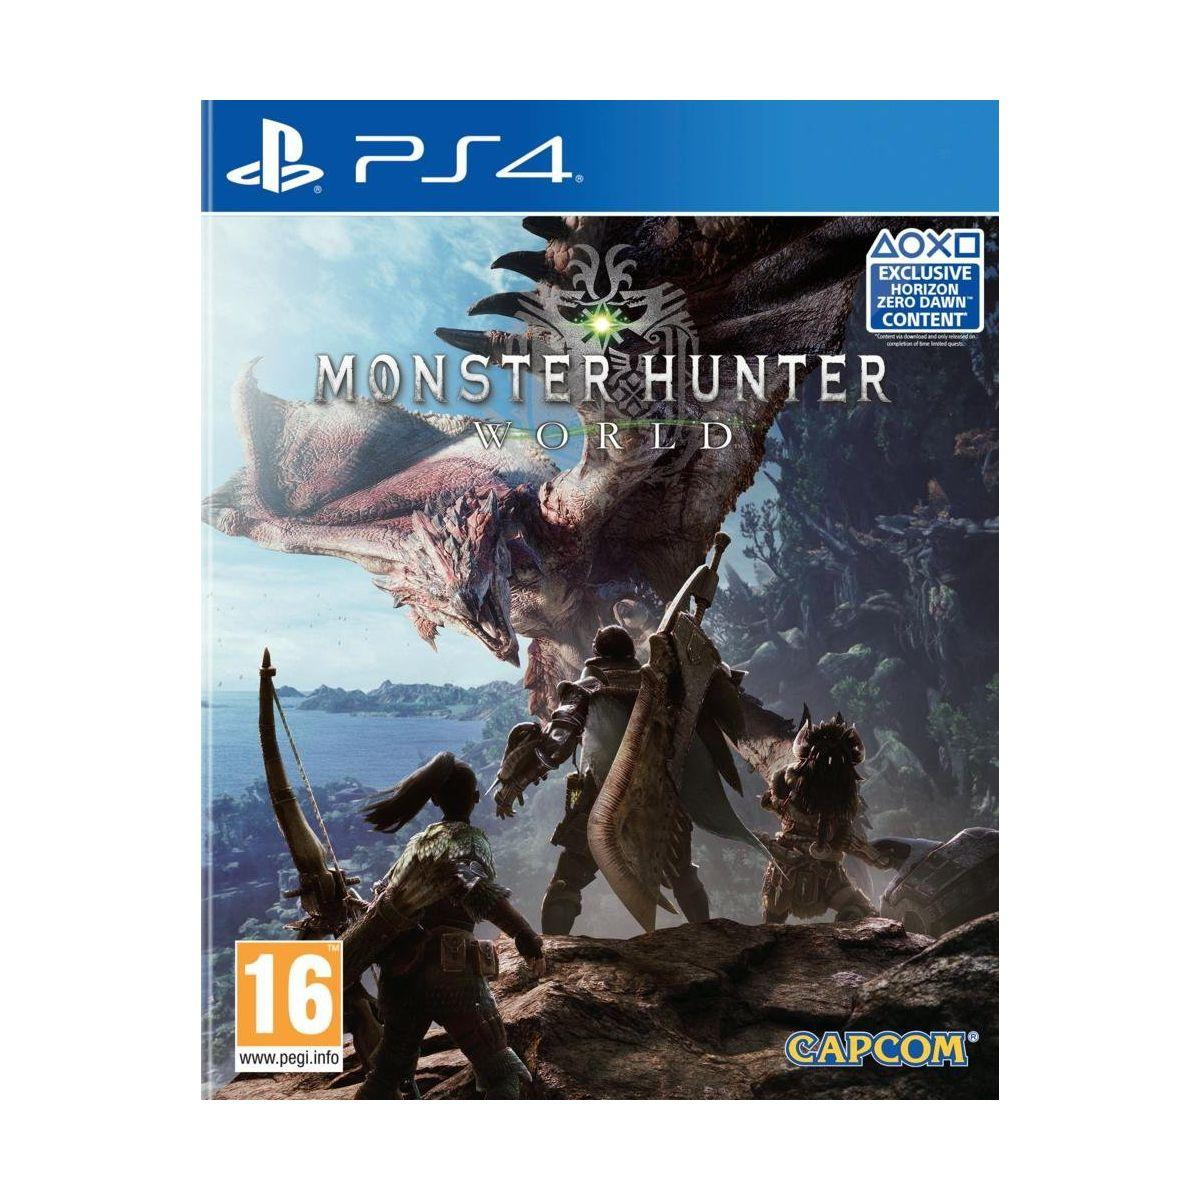 Jeu ps4 capcom monster hunter world (photo)